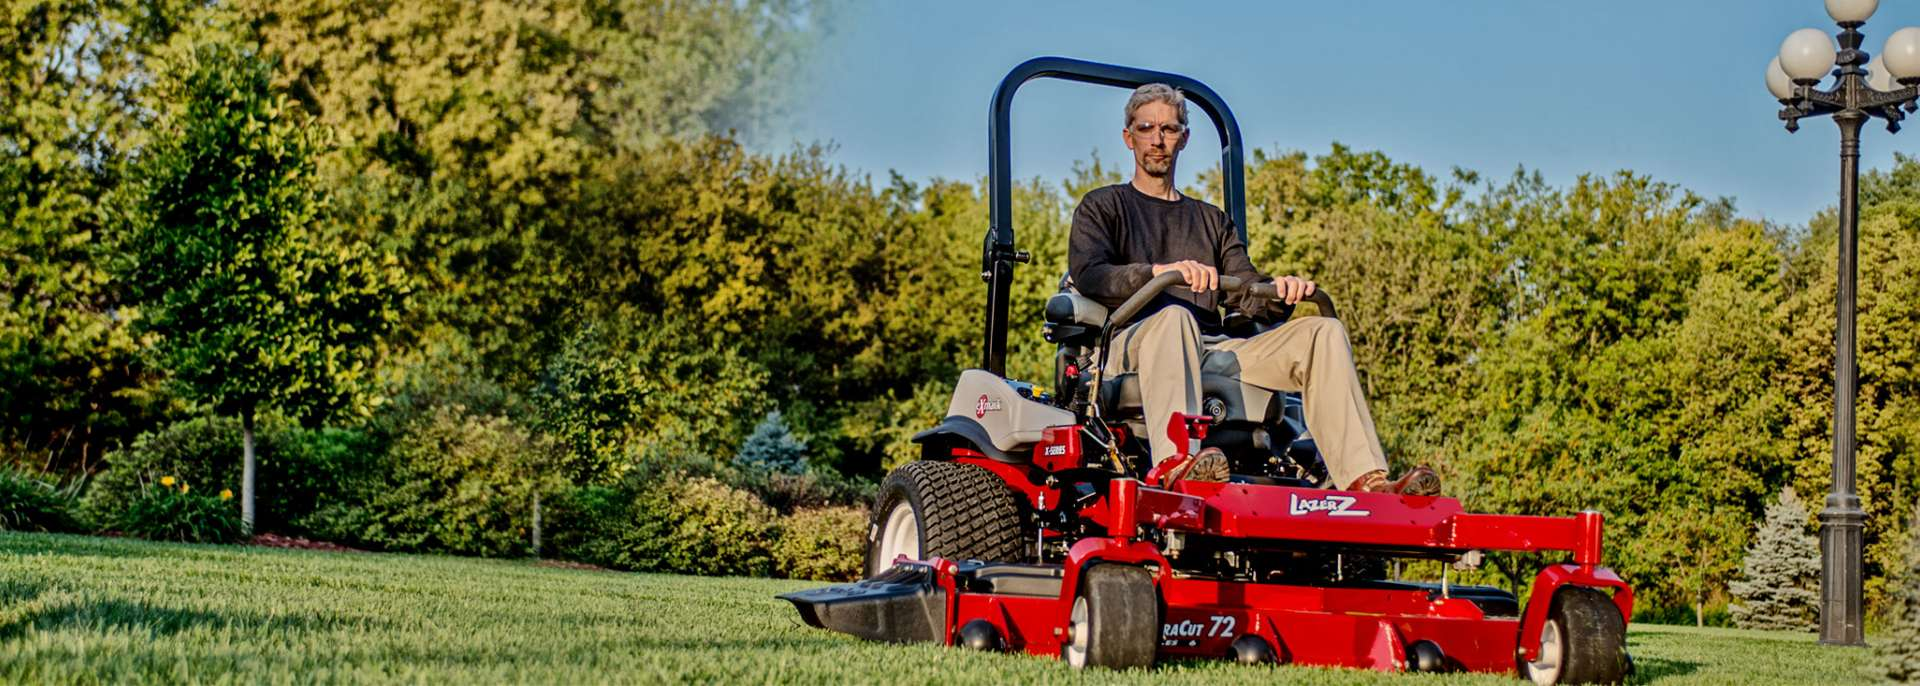 Ray's Lawnmower Sales & Service